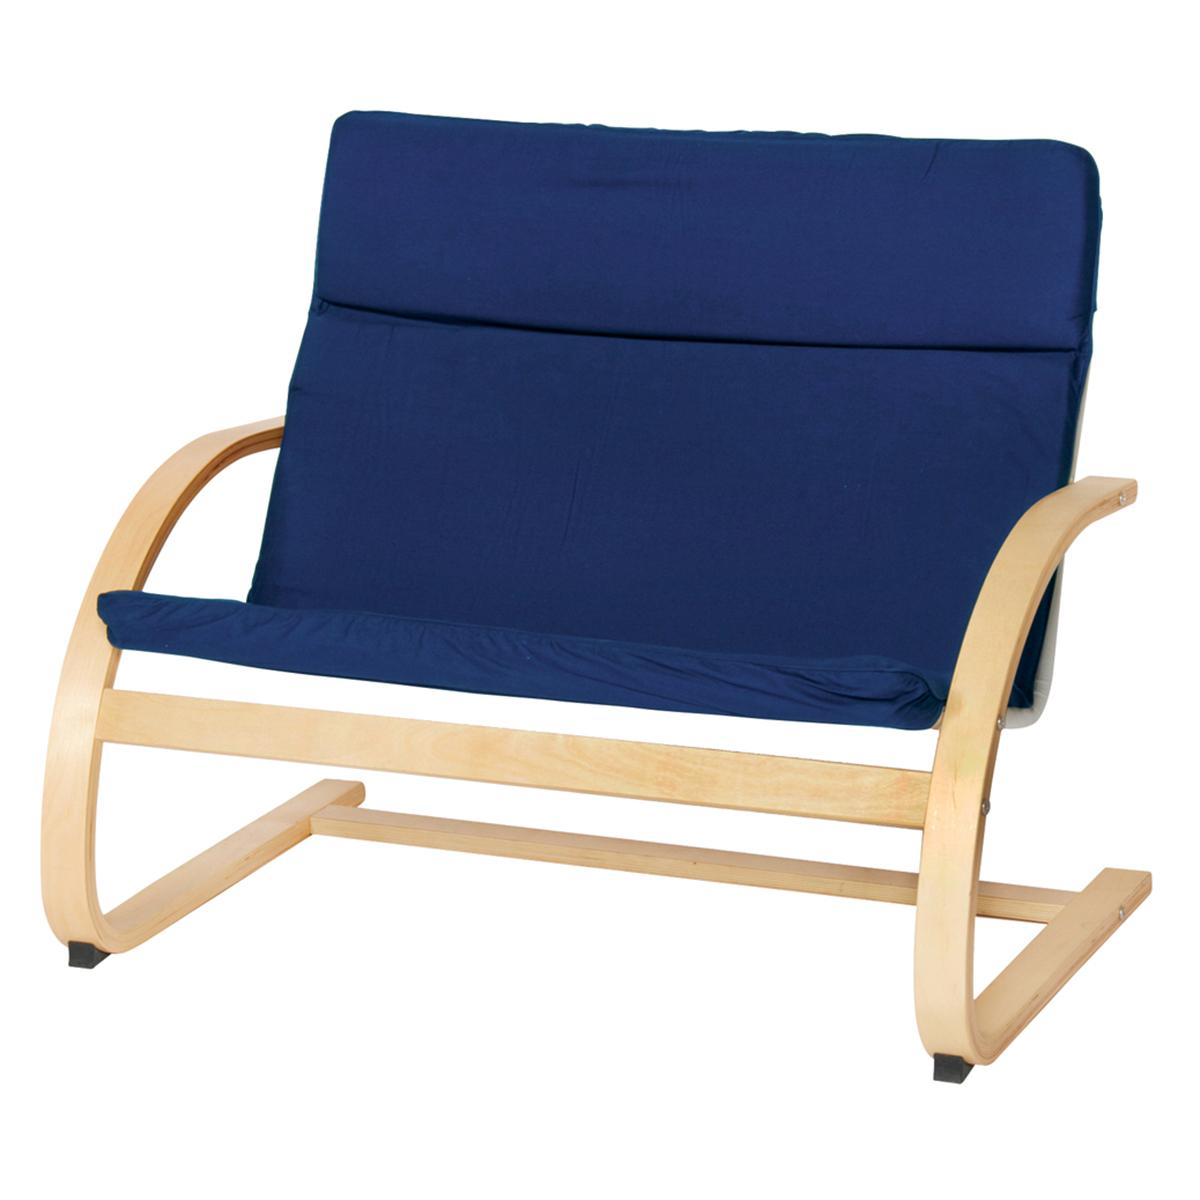 Children's Couch: Blue